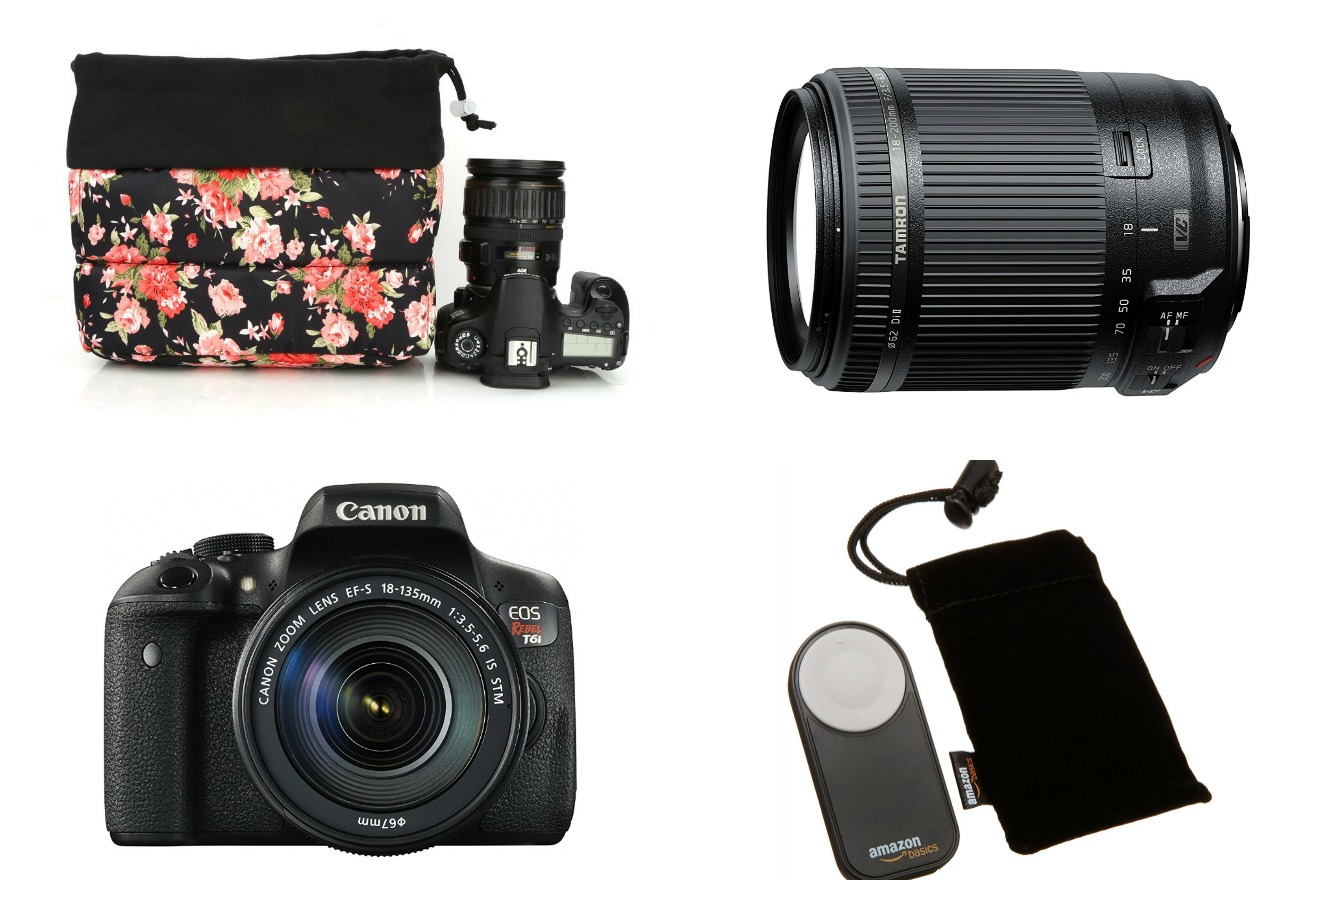 Pick the right digital photography essentials for taking family photos. Pick the perfect digital camera and accessories for parents and kids.